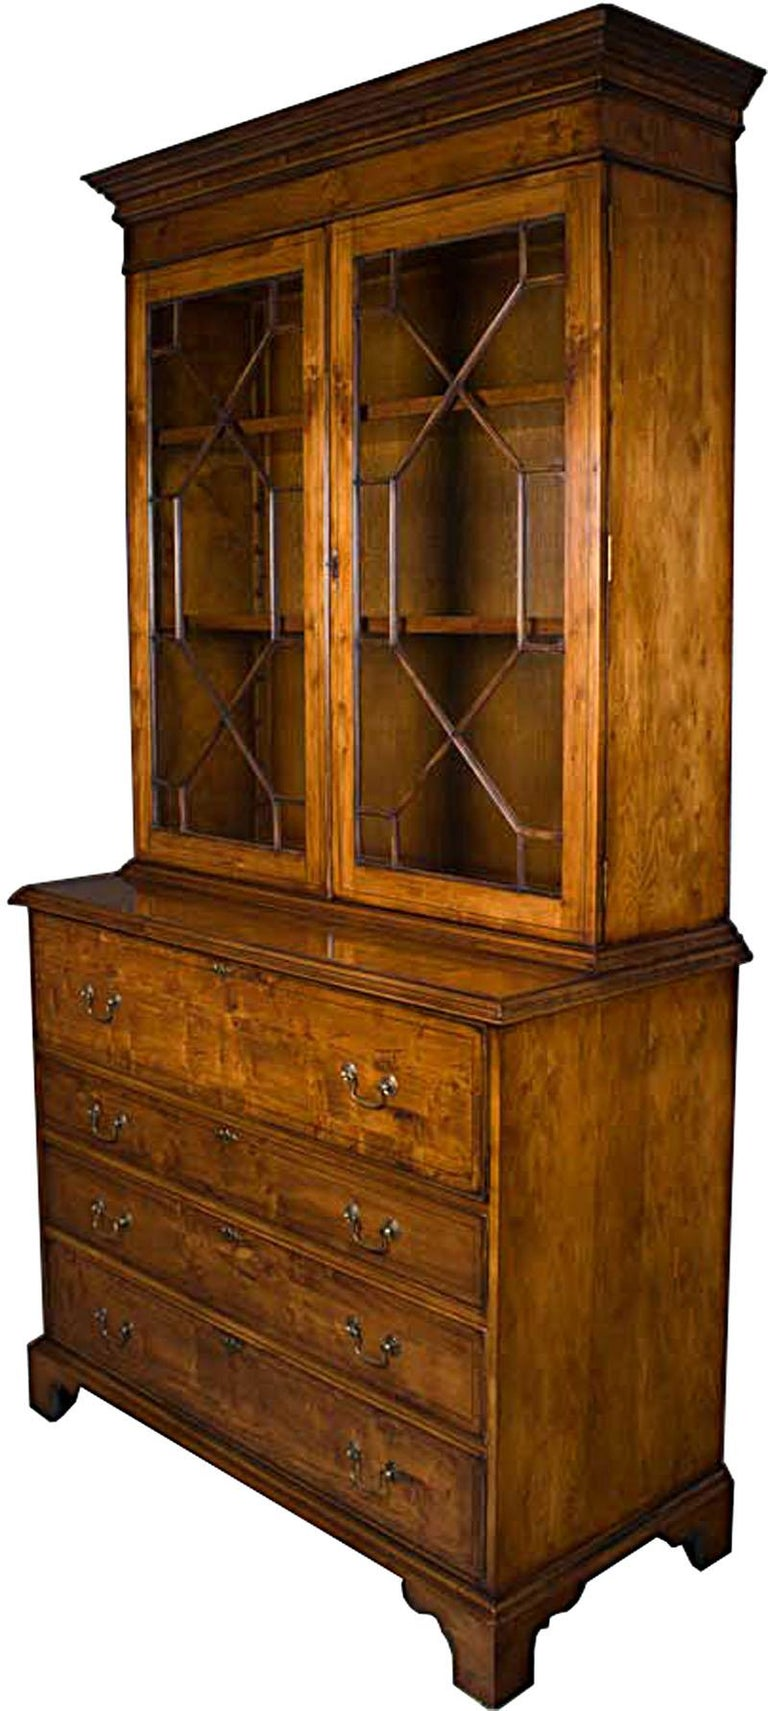 English Yew Wood Secretaire Secretary Bookcase Butlers Desk For Sale 3